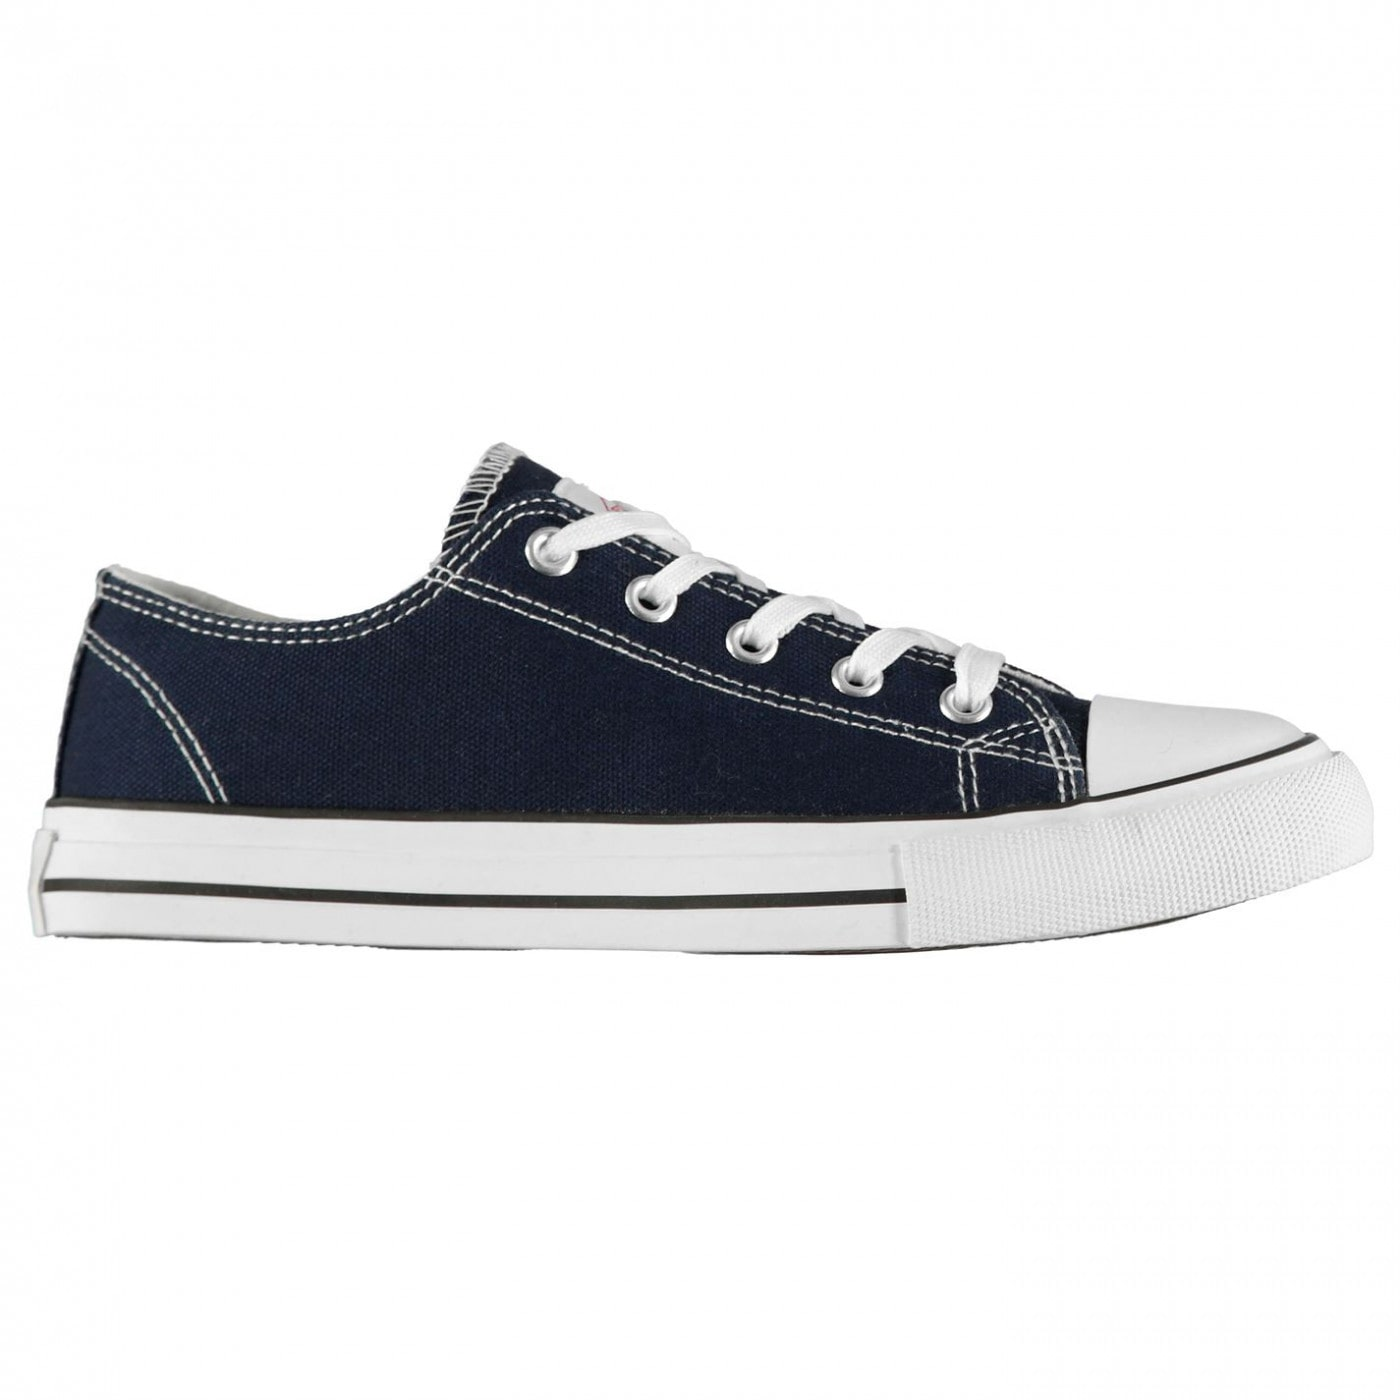 Lee Cooper Canvas Lo Shoes Unisex Juniors